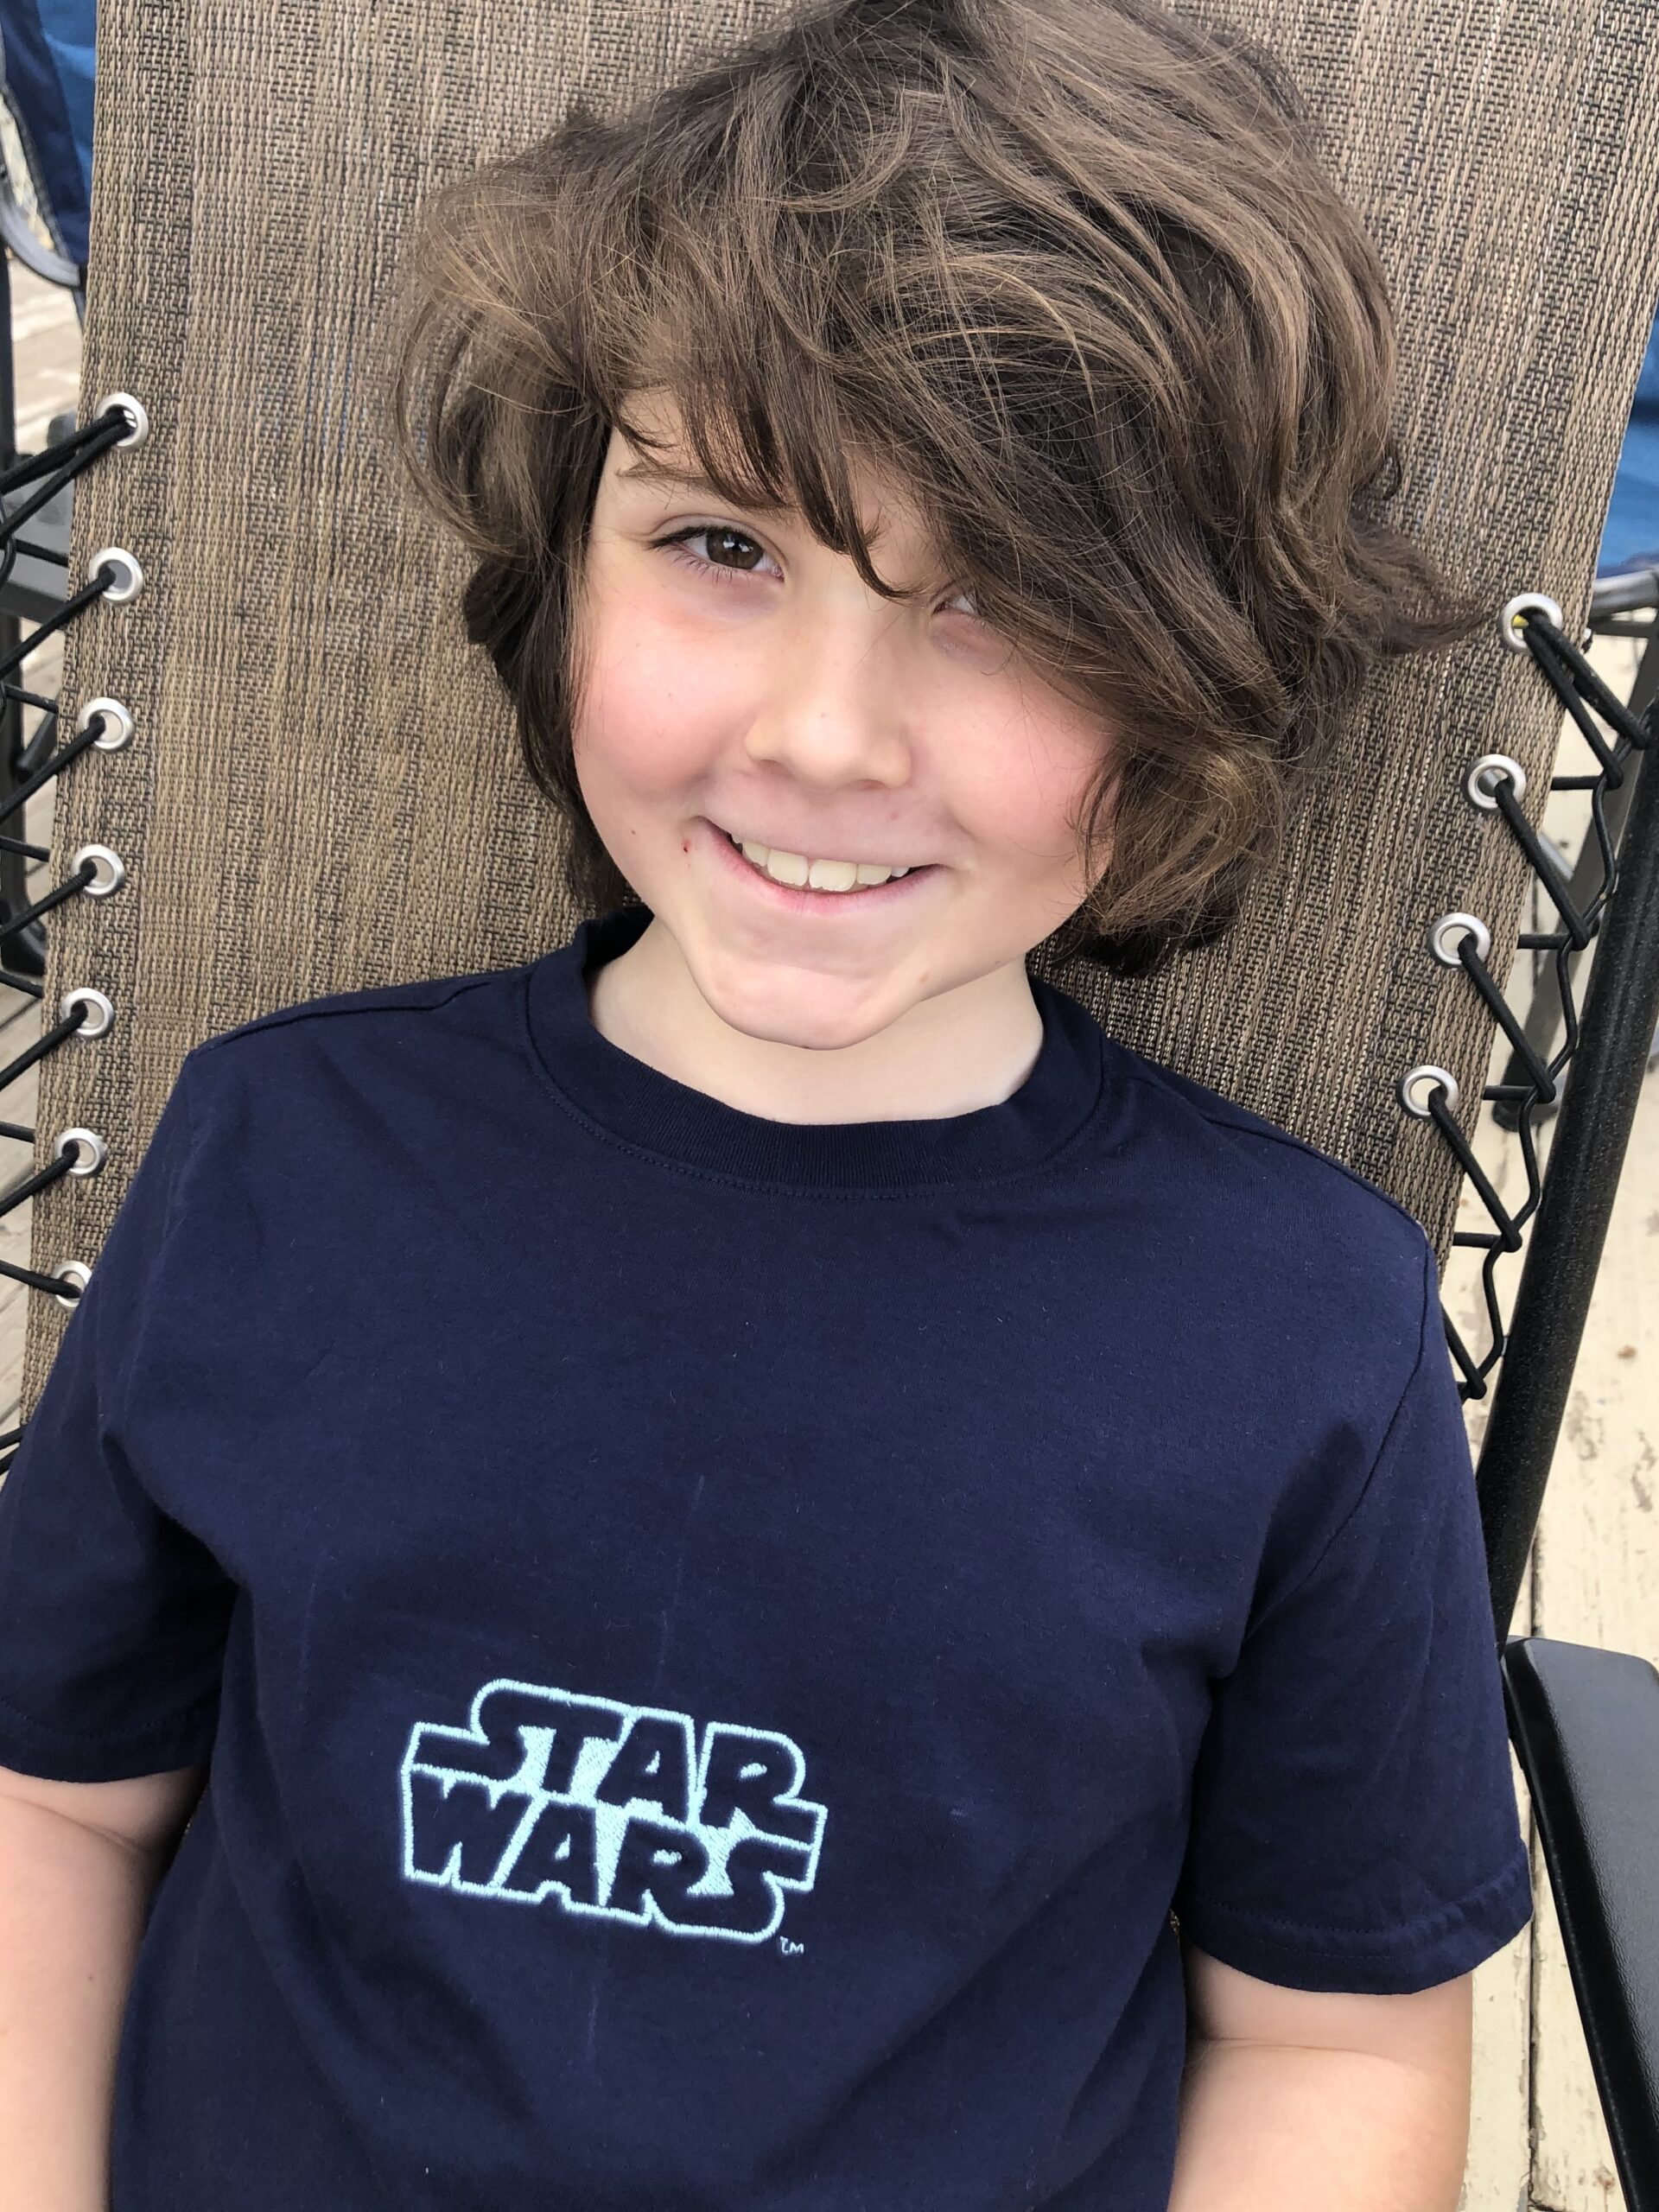 Star Wars finished T-shirt on model